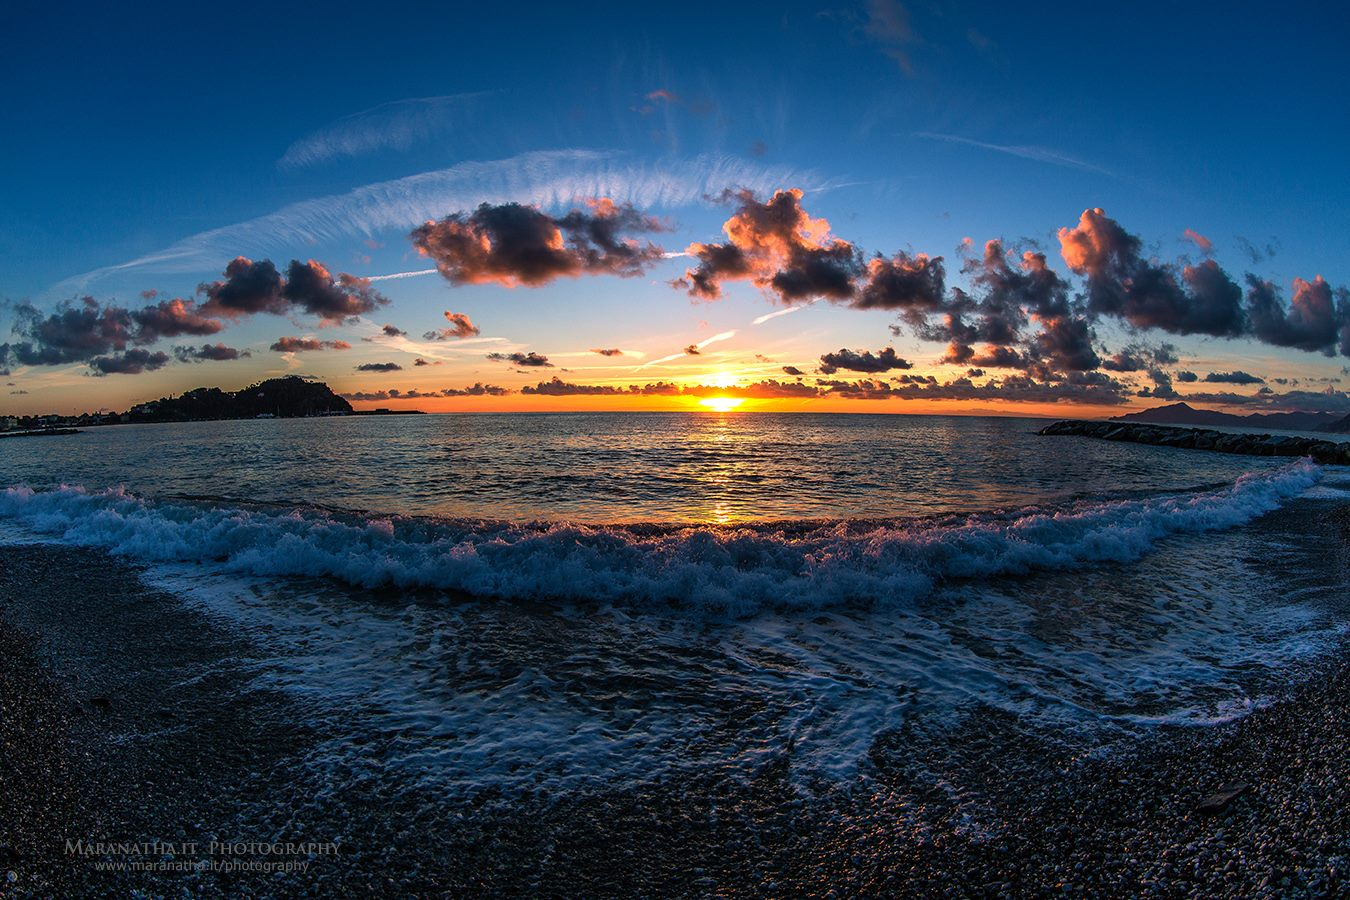 Sunset over the Ligurian Sea, at the town of Sestri Levante, near Genoa, Italy on January 14, 2014 16:59 By Maranatha.it Photography.